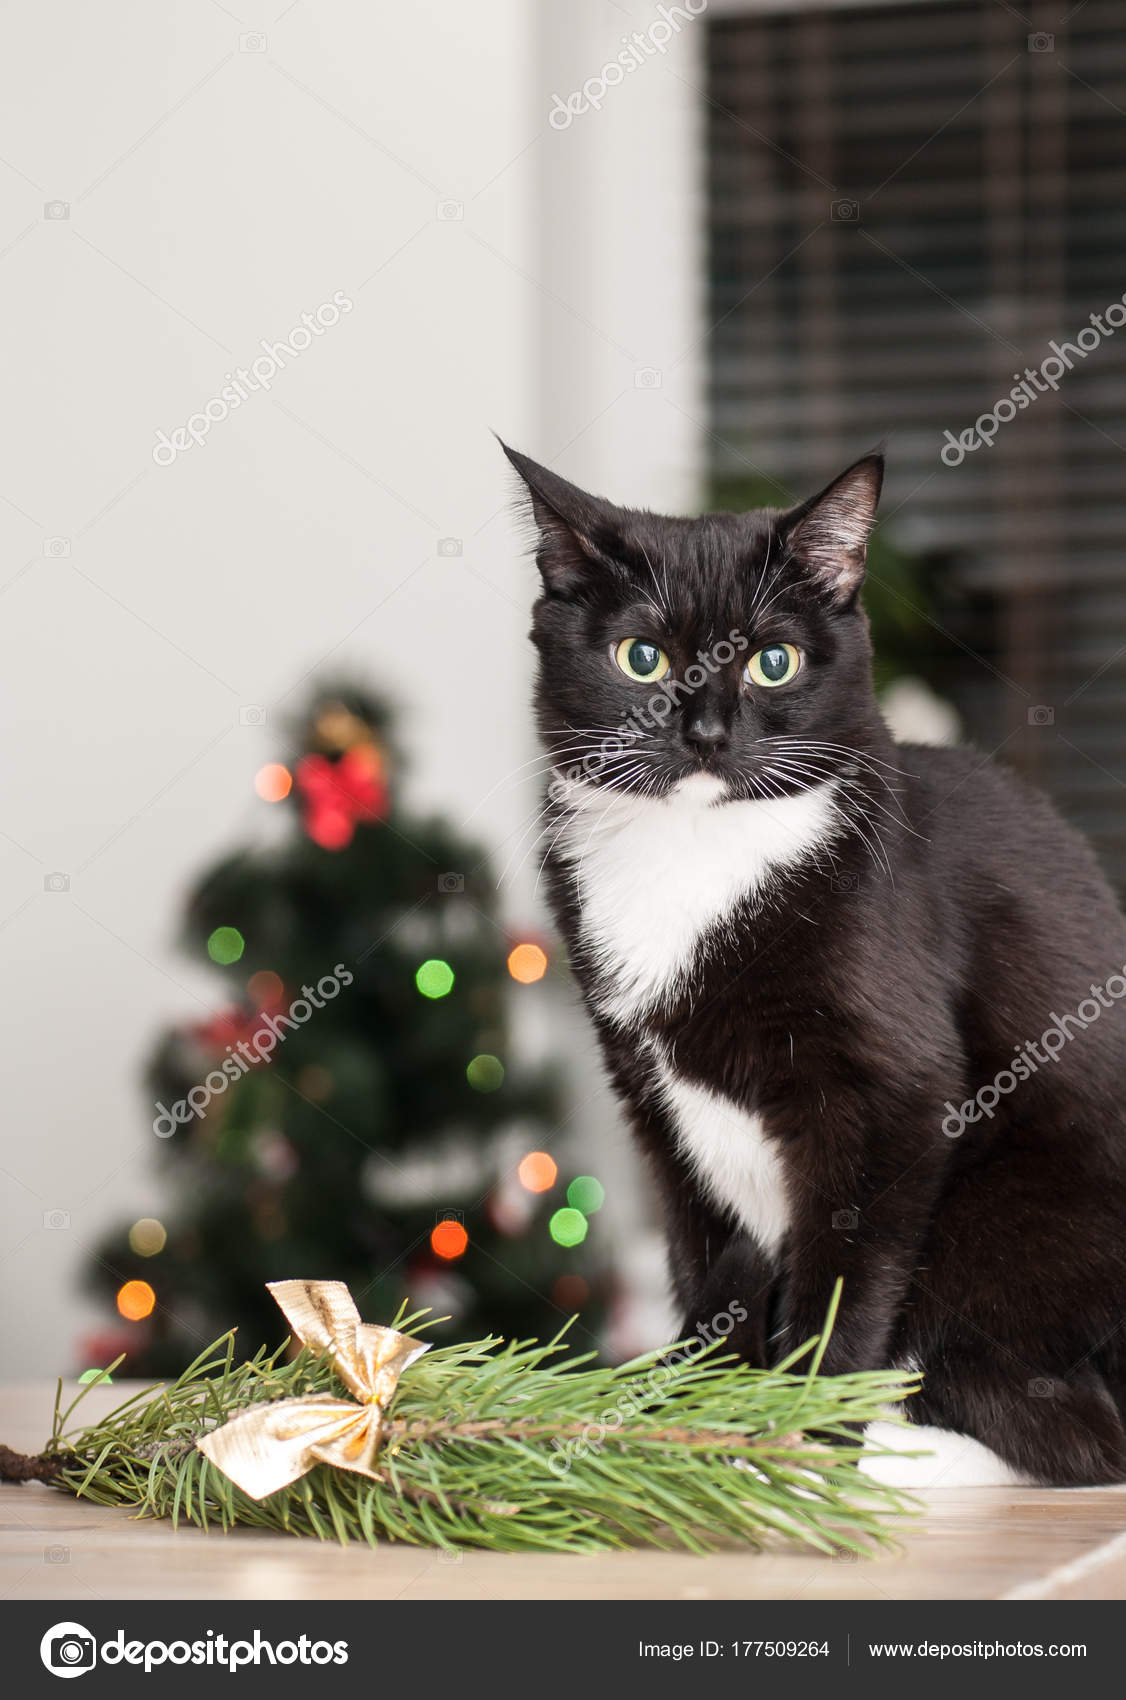 cat on the background of a christmas tree decorated with a close up photo by oksy001